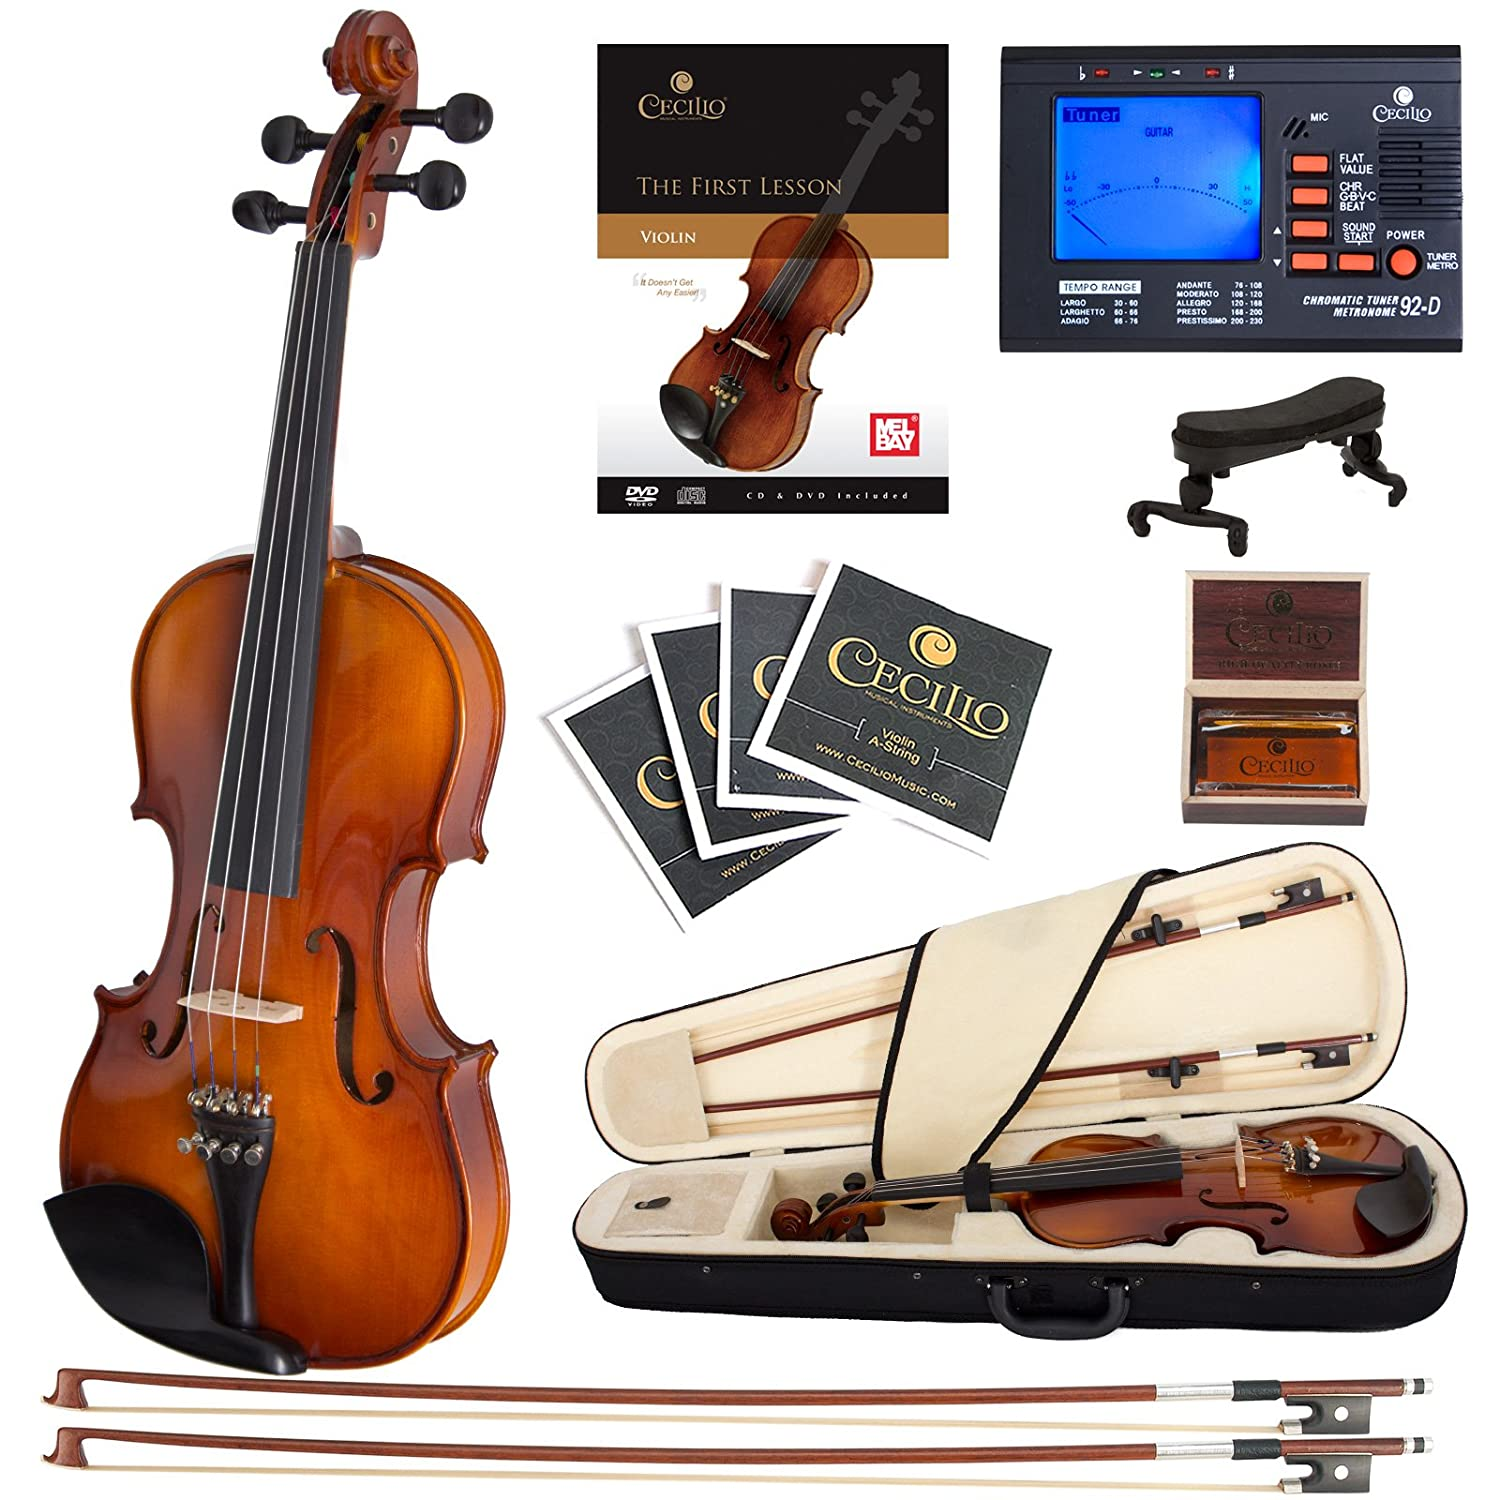 Cecilio CVN-300 Ebony Fitted Solid Wood Violin with Tuner and Lesson Book, Size 1/4 1/4CVN-300+SR+92D+FB1